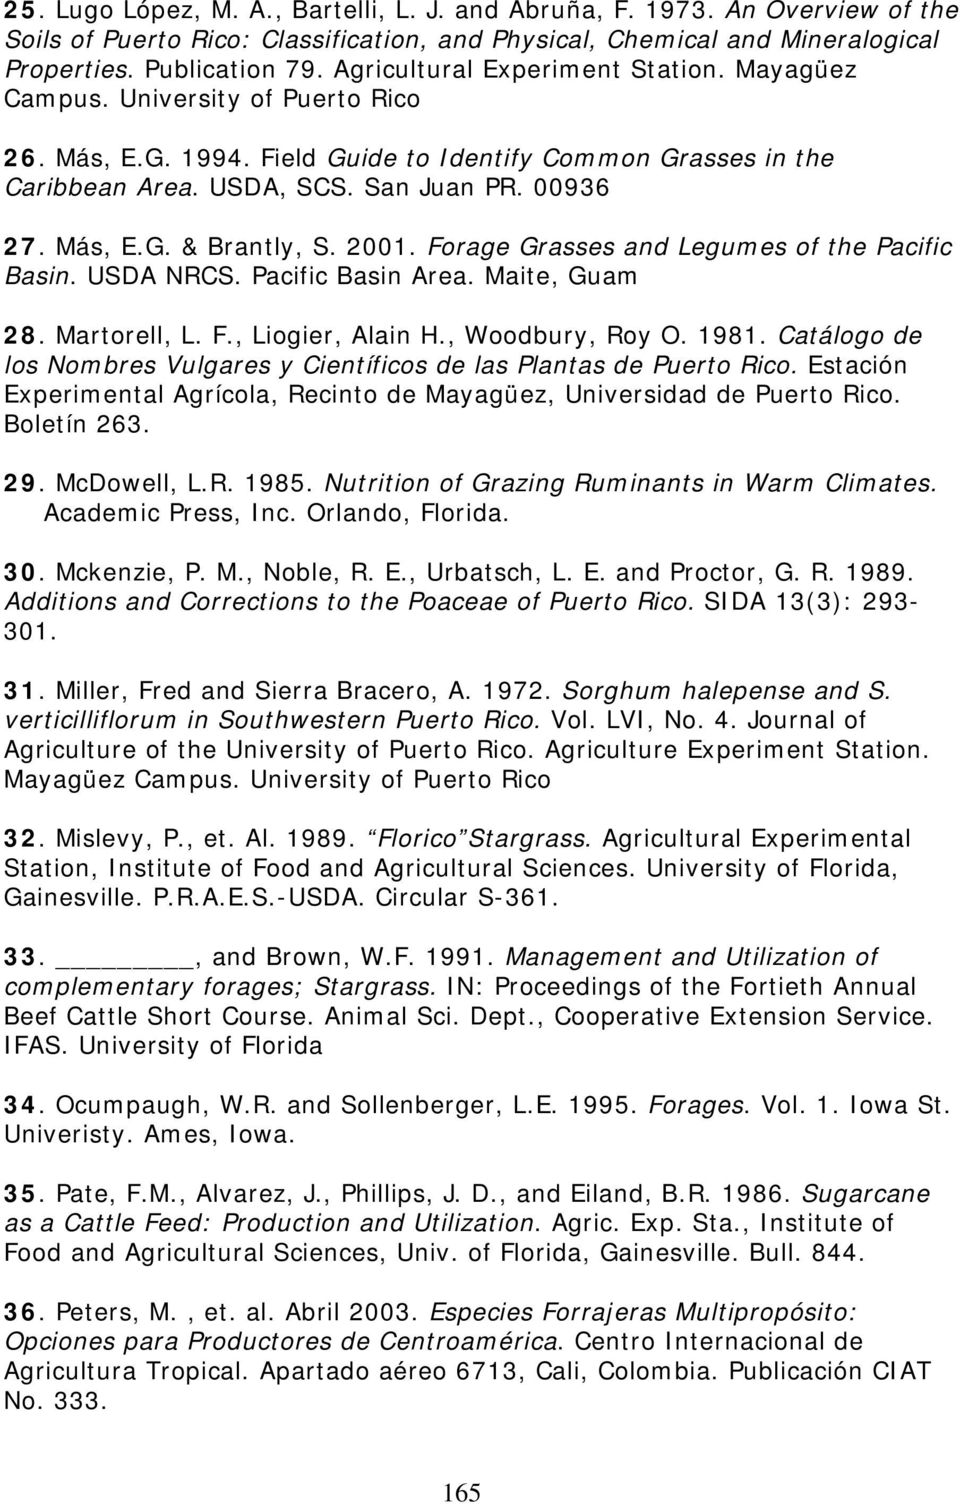 2001. Forage Grasses and Legumes of the Pacific Basin. USDA NRCS. Pacific Basin Area. Maite, Guam 28. Martorell, L. F., Liogier, Alain H., Woodbury, Roy O. 1981.